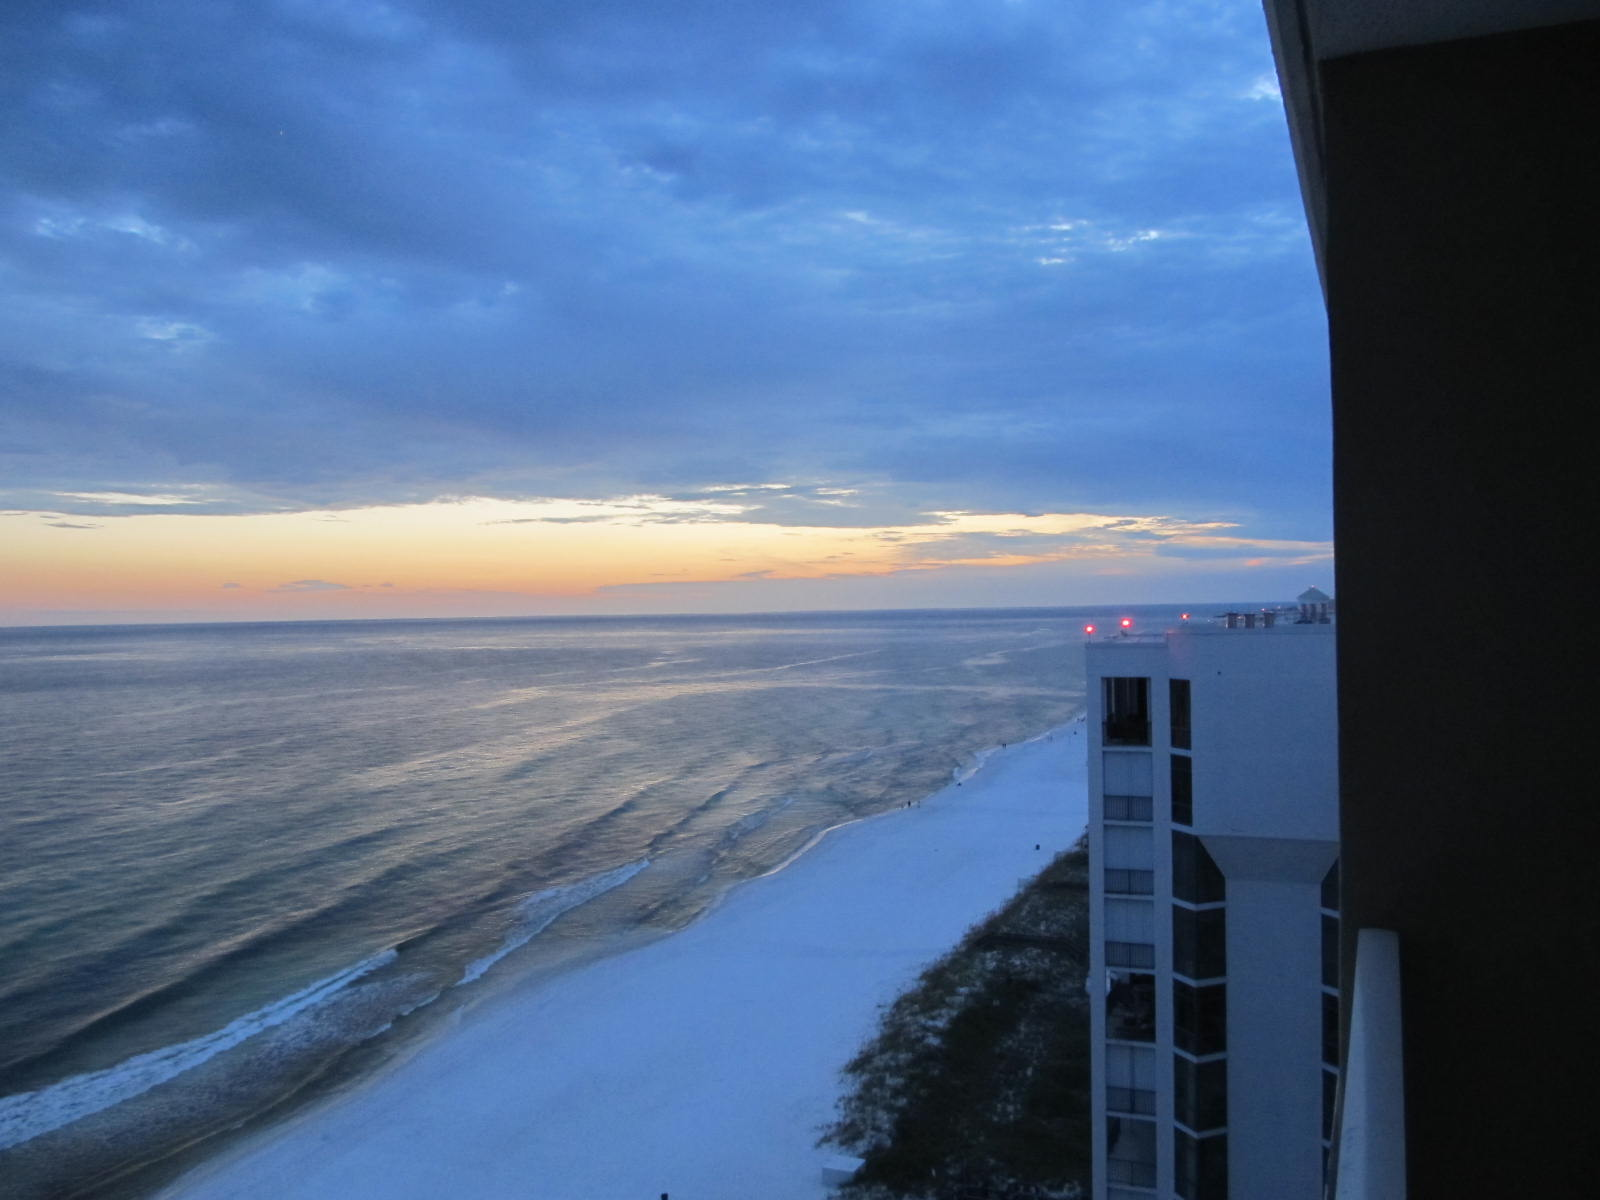 Sunset in Destin